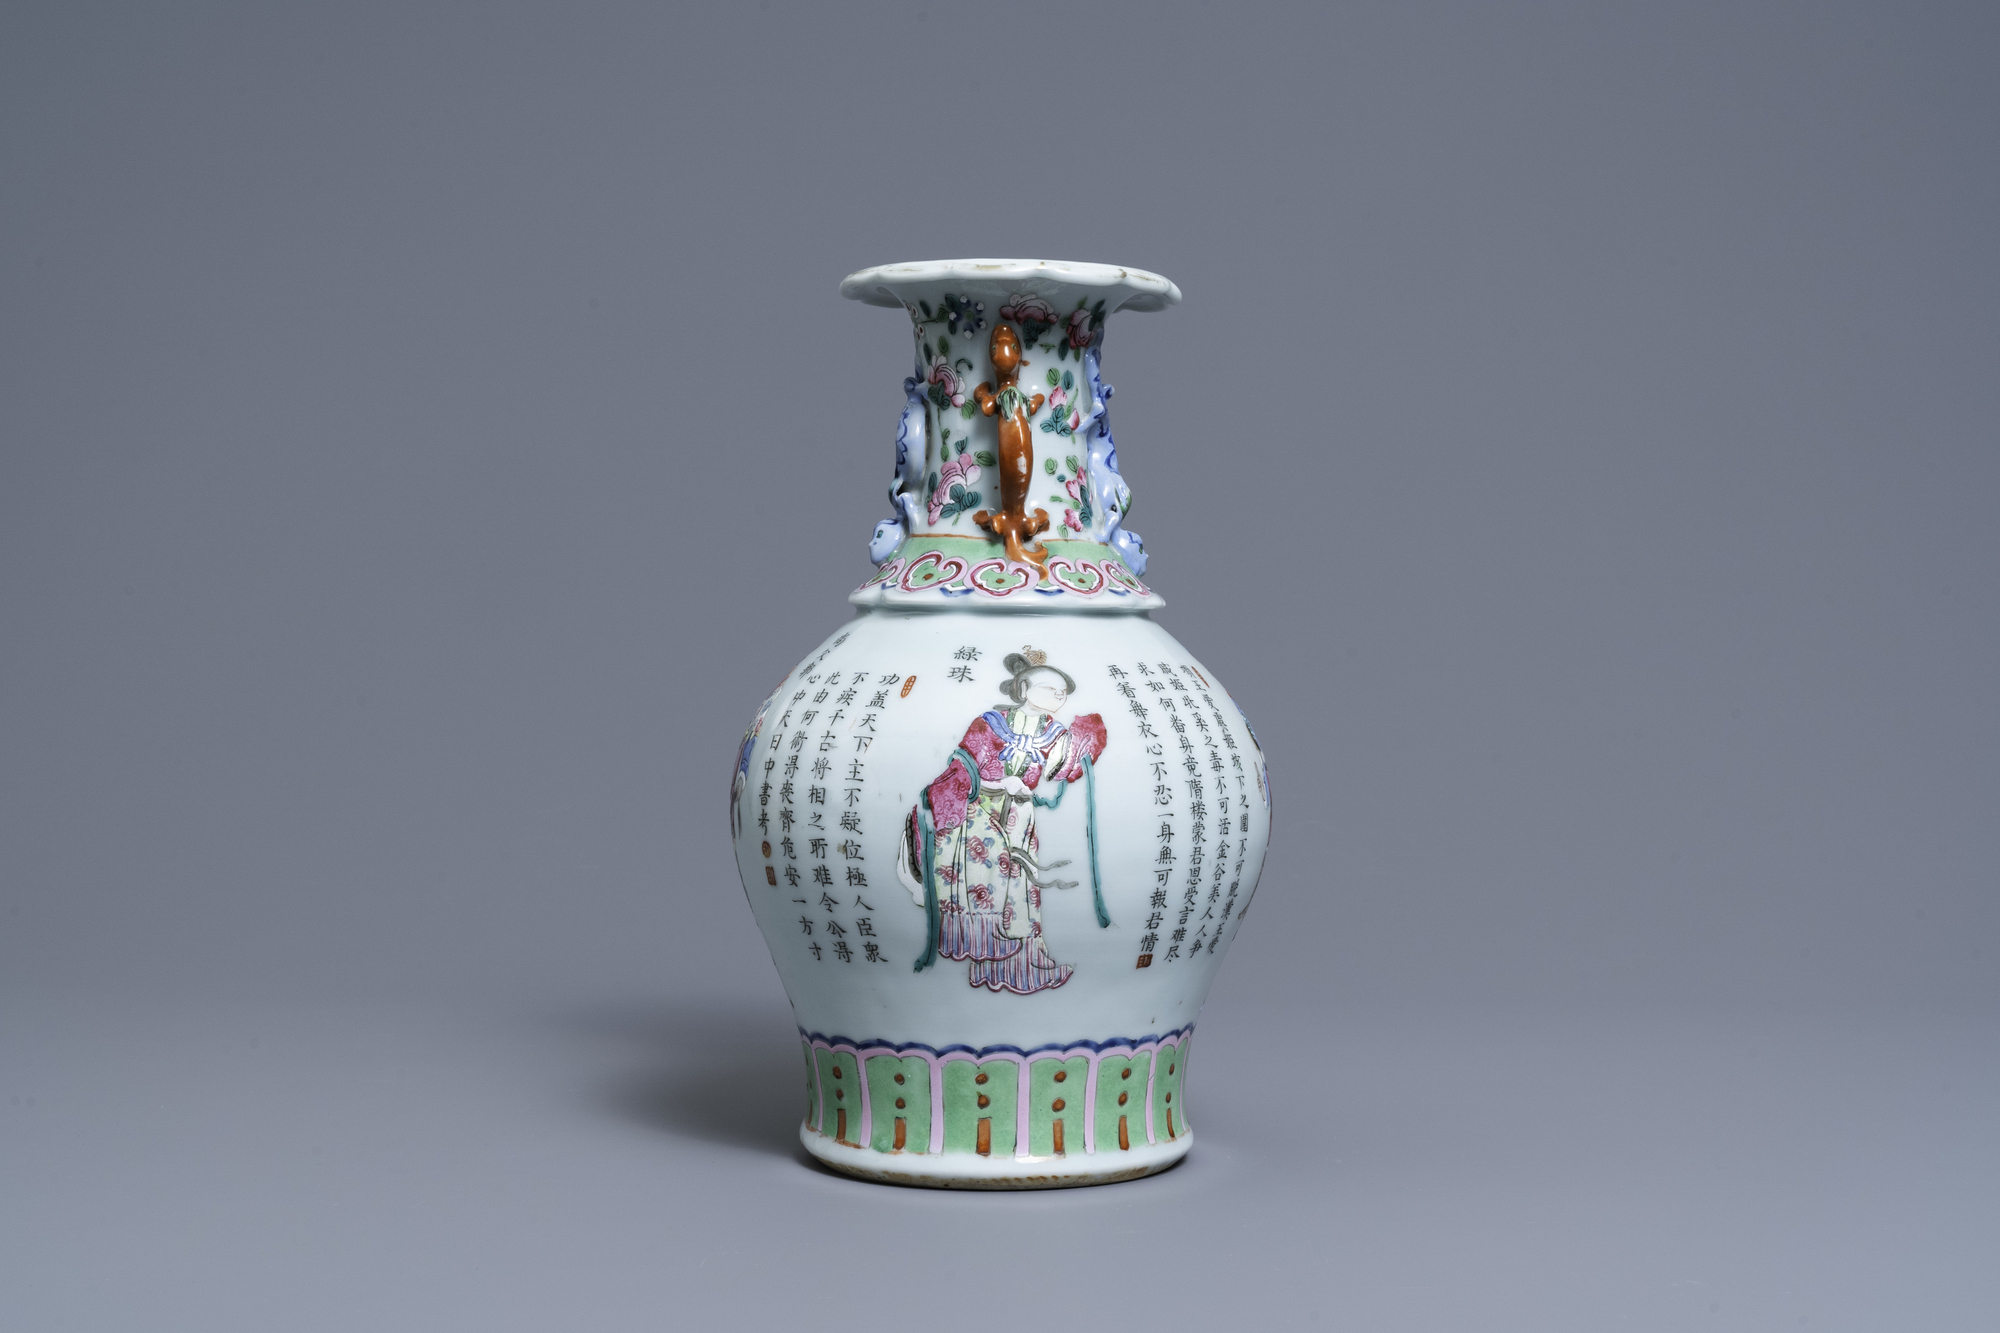 A Chinese famille rose 'Wu Shuang Pu' vase, 19th C. - Image 2 of 6